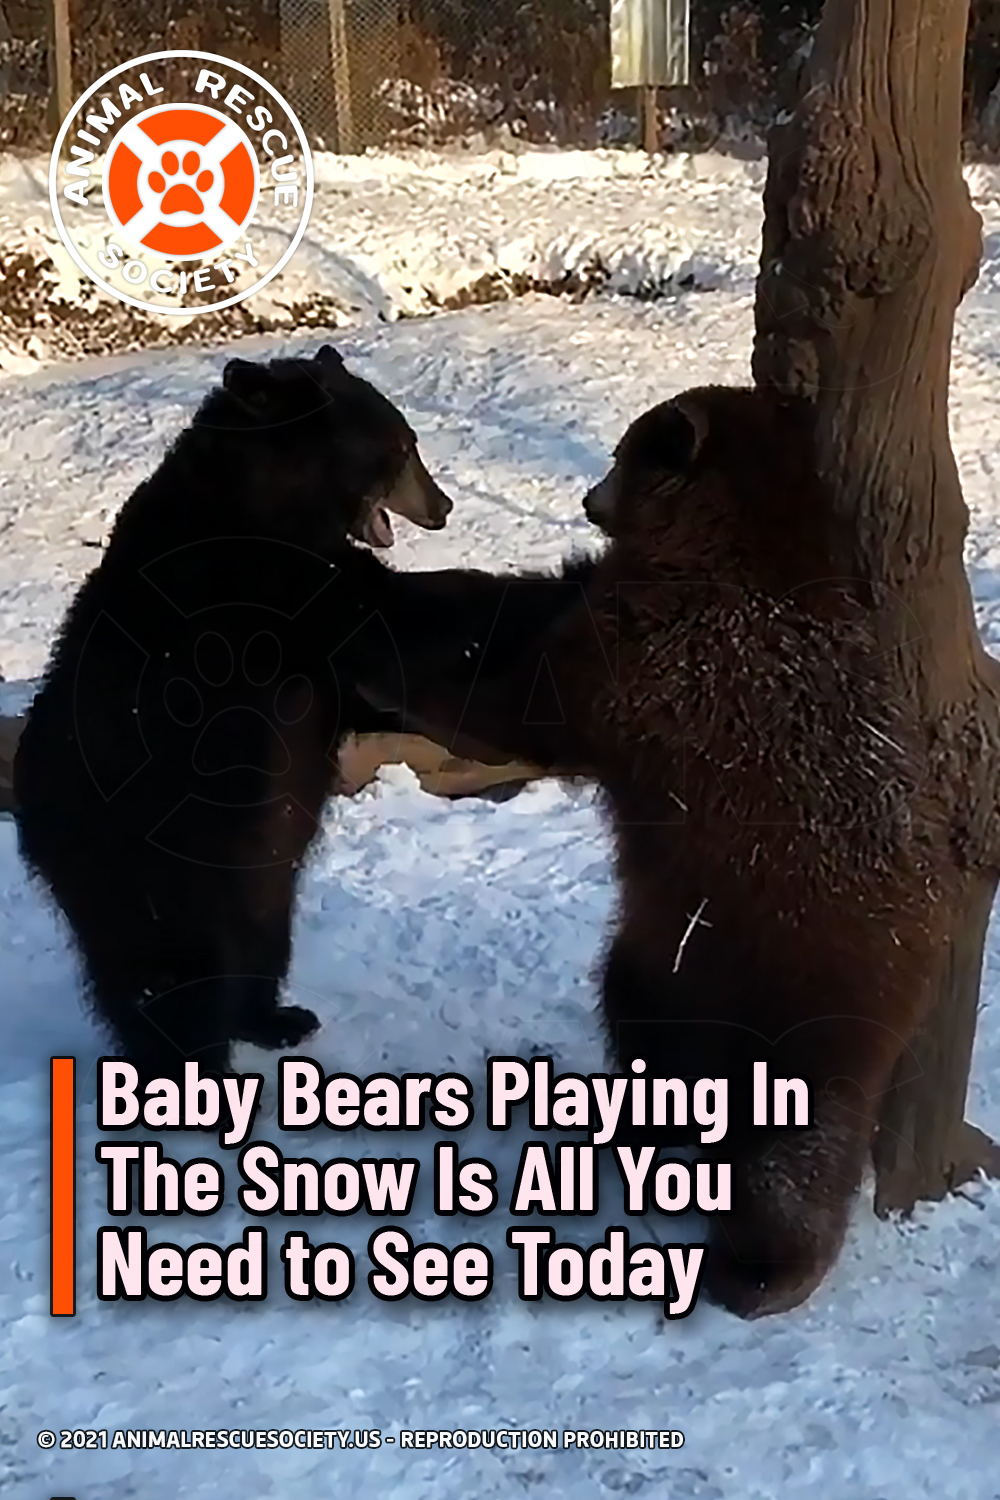 Baby Bears Playing In The Snow Is All You Need to See Today